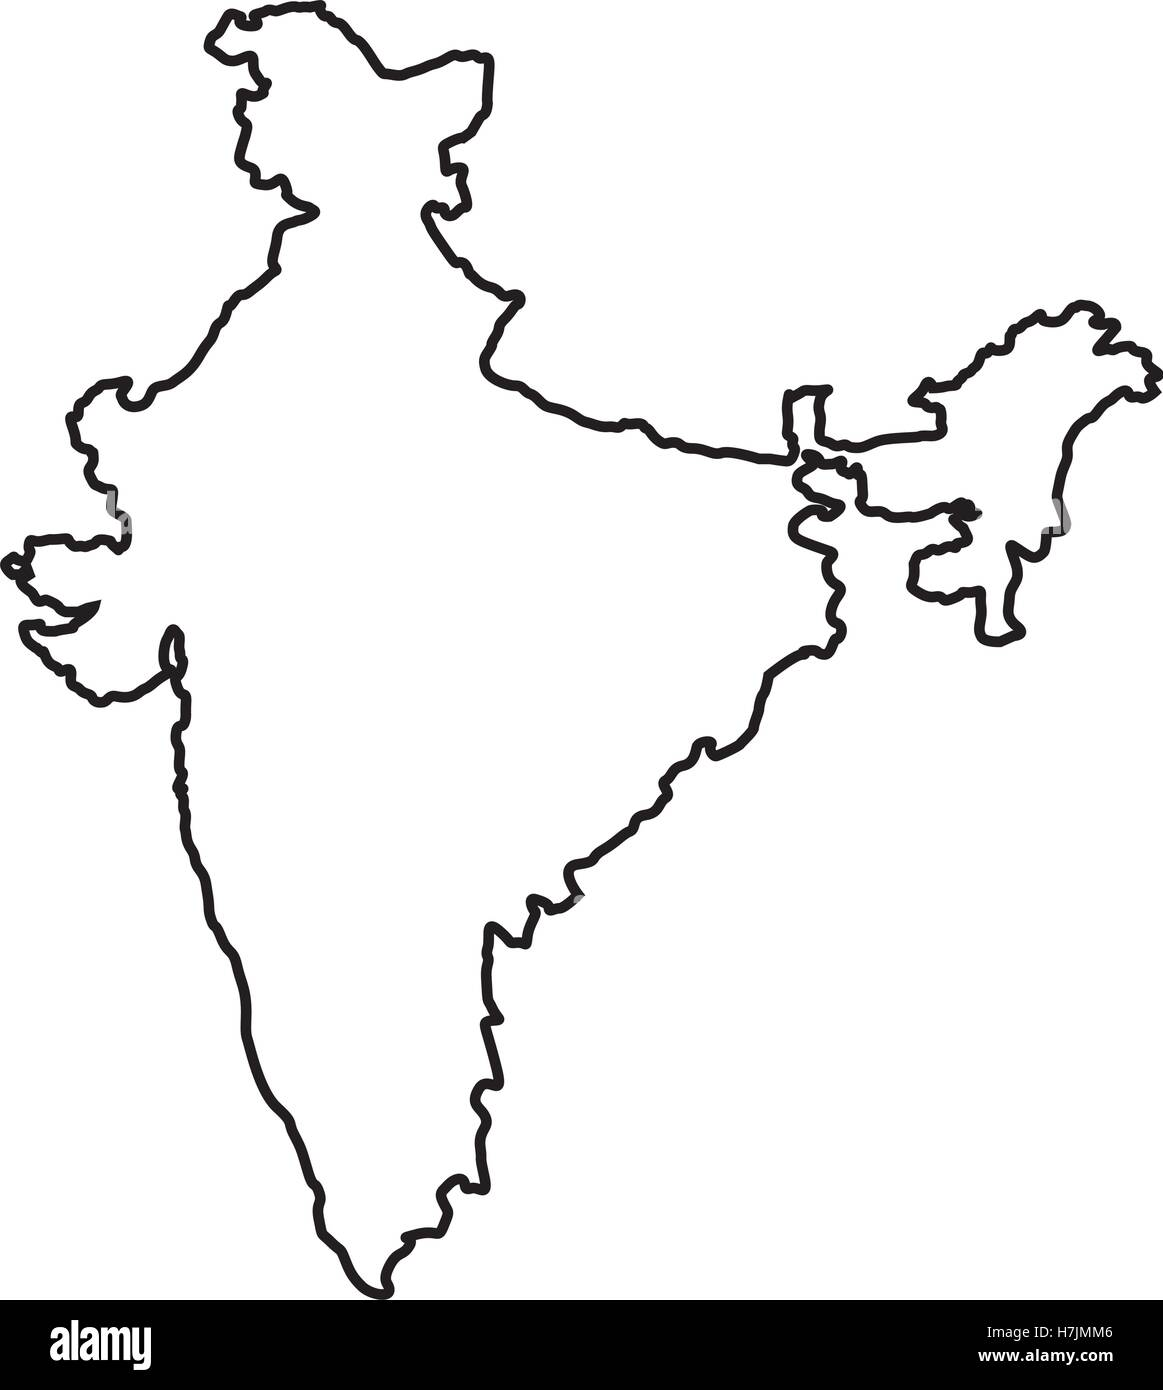 Silhouette Of Republic Of India Country Map Icon Over White Stock - India map vector